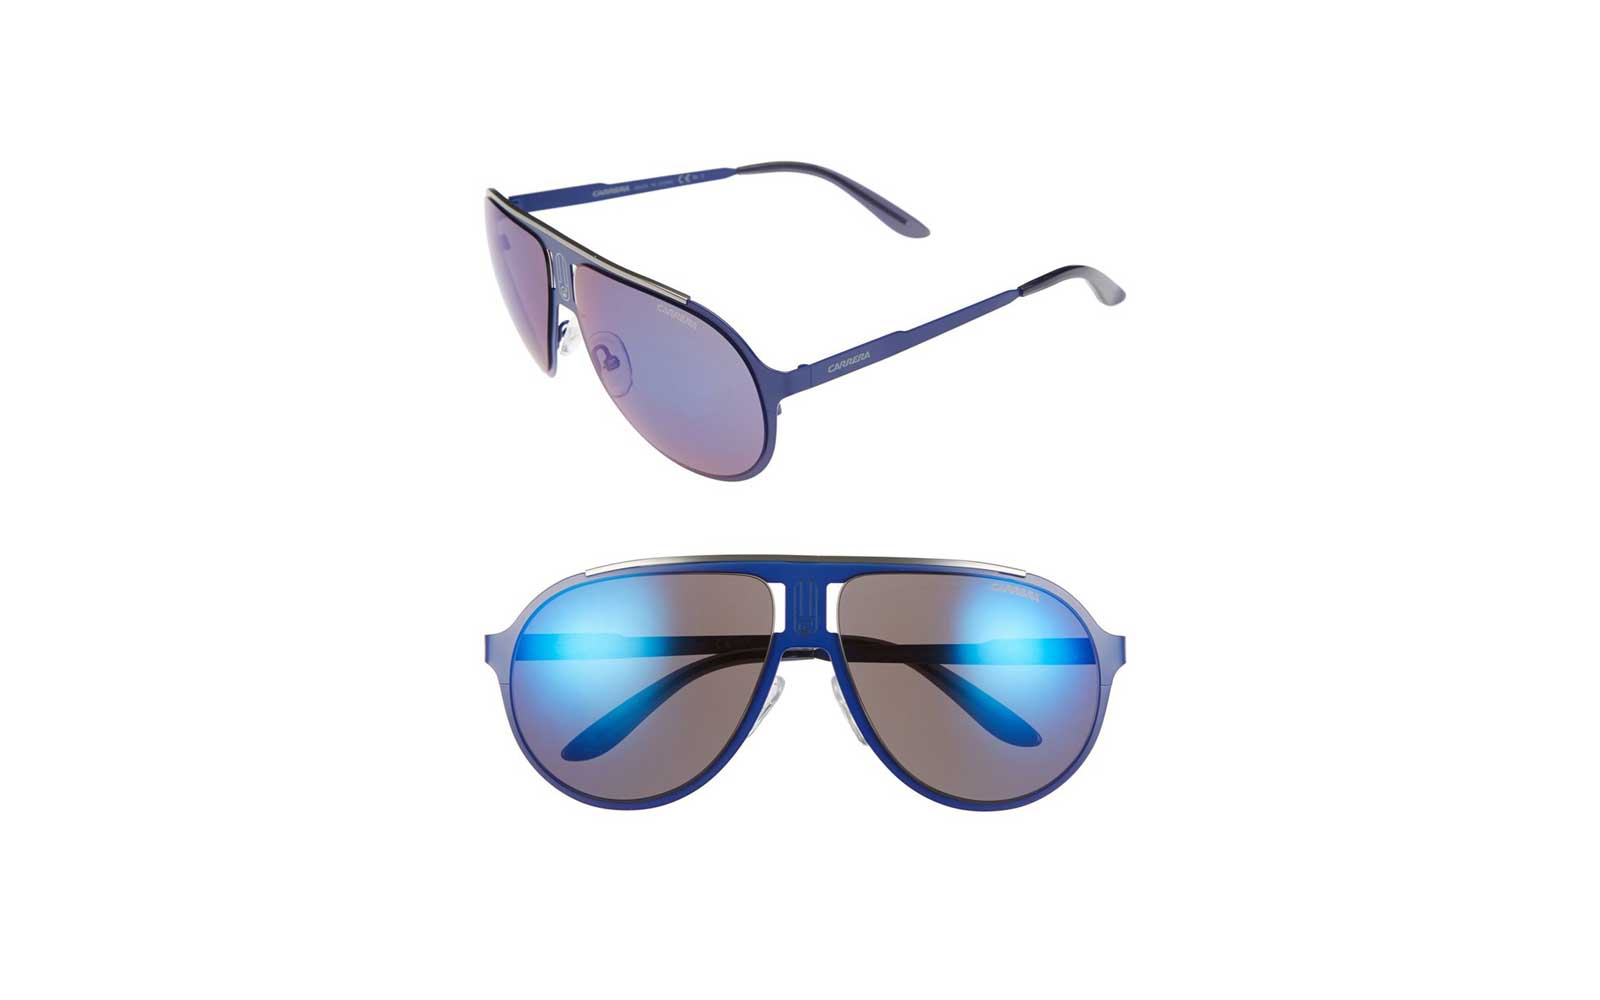 Carrera Eyewear Sunglasses